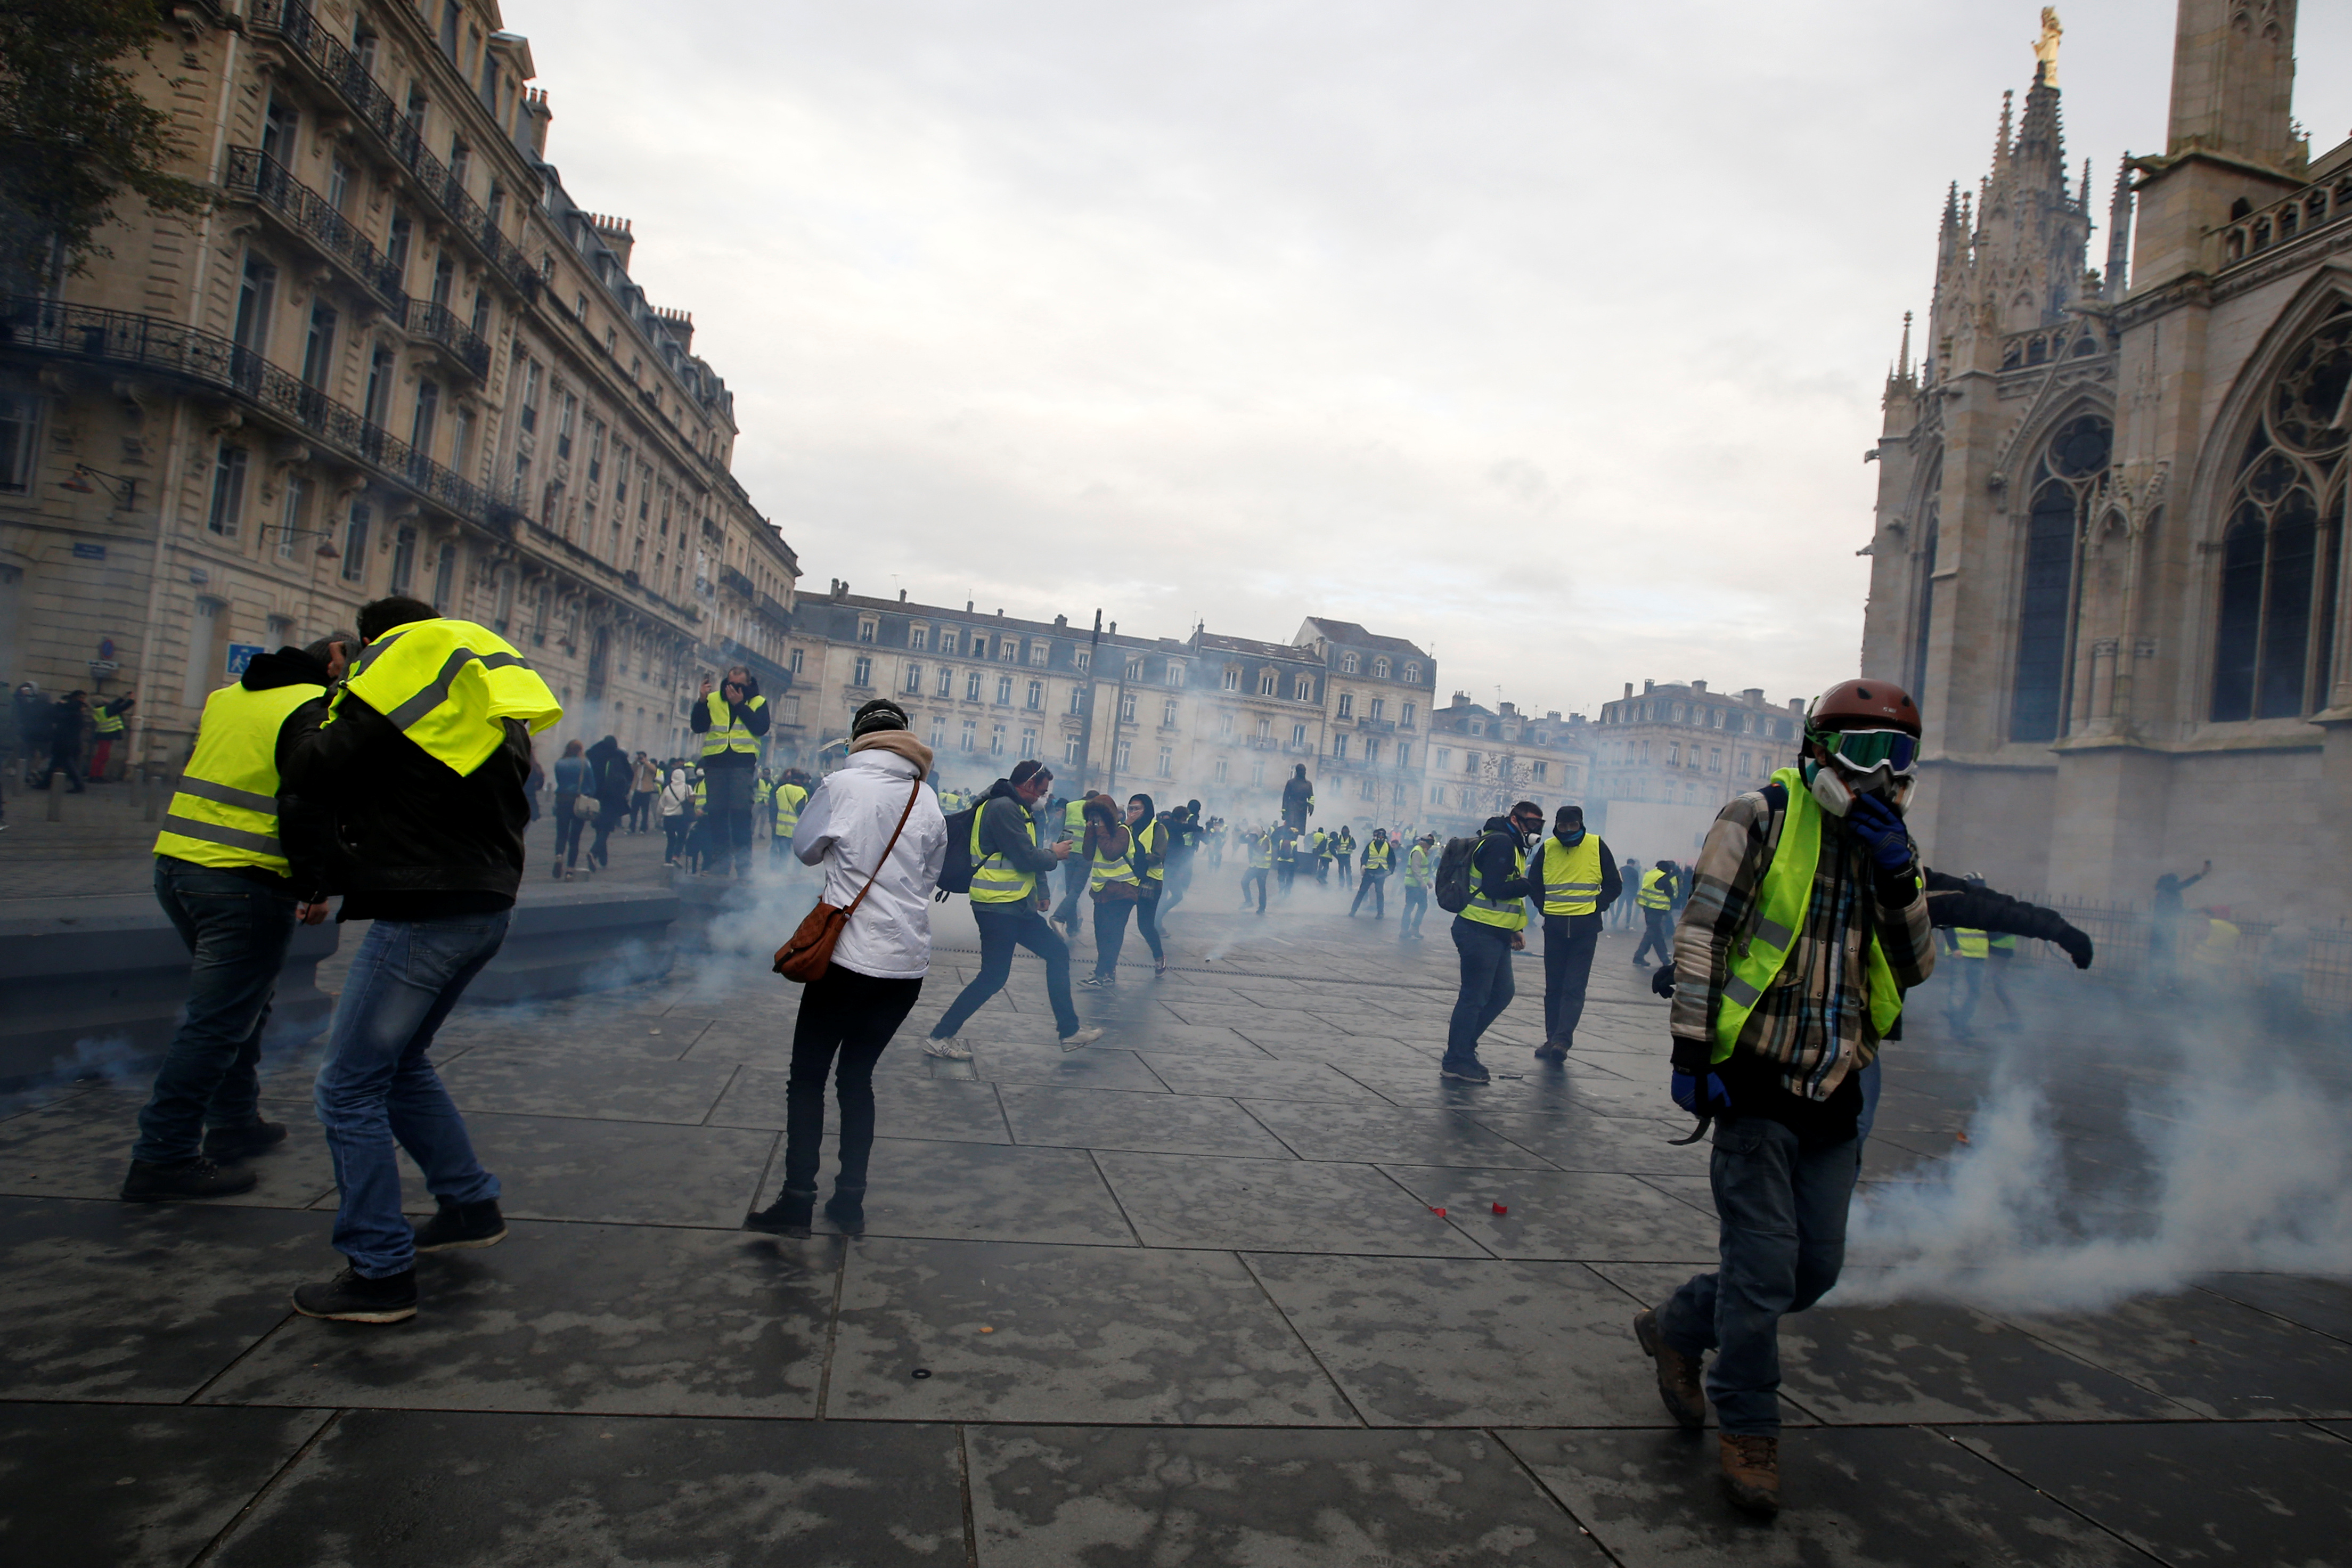 Protesters wearing yellow vests walk through tear gas